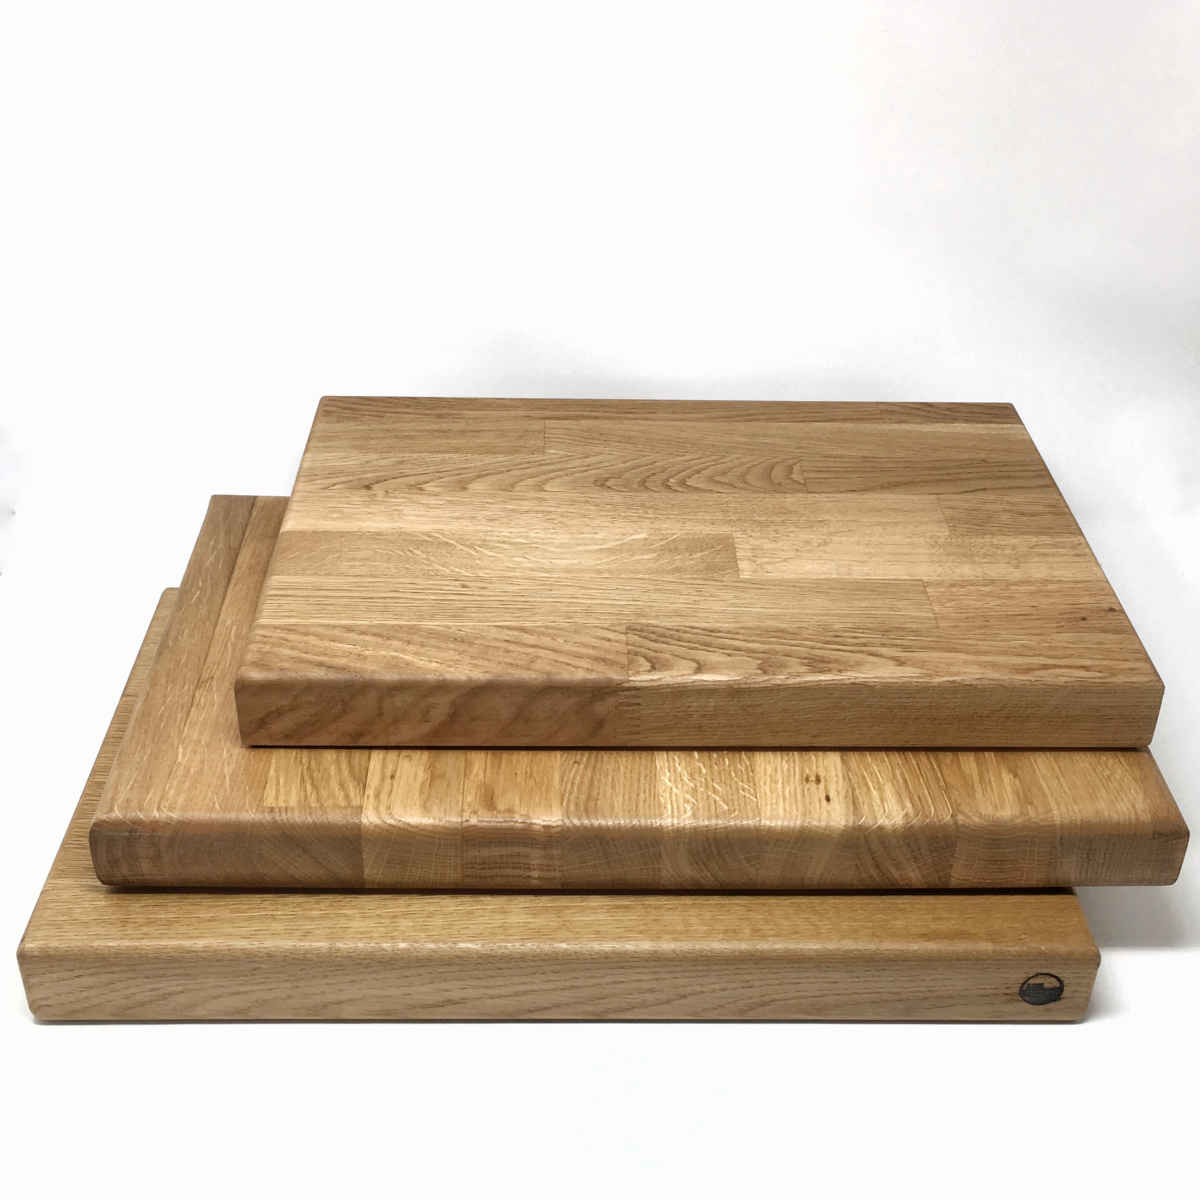 Reclaimed wood chopping board LARGE